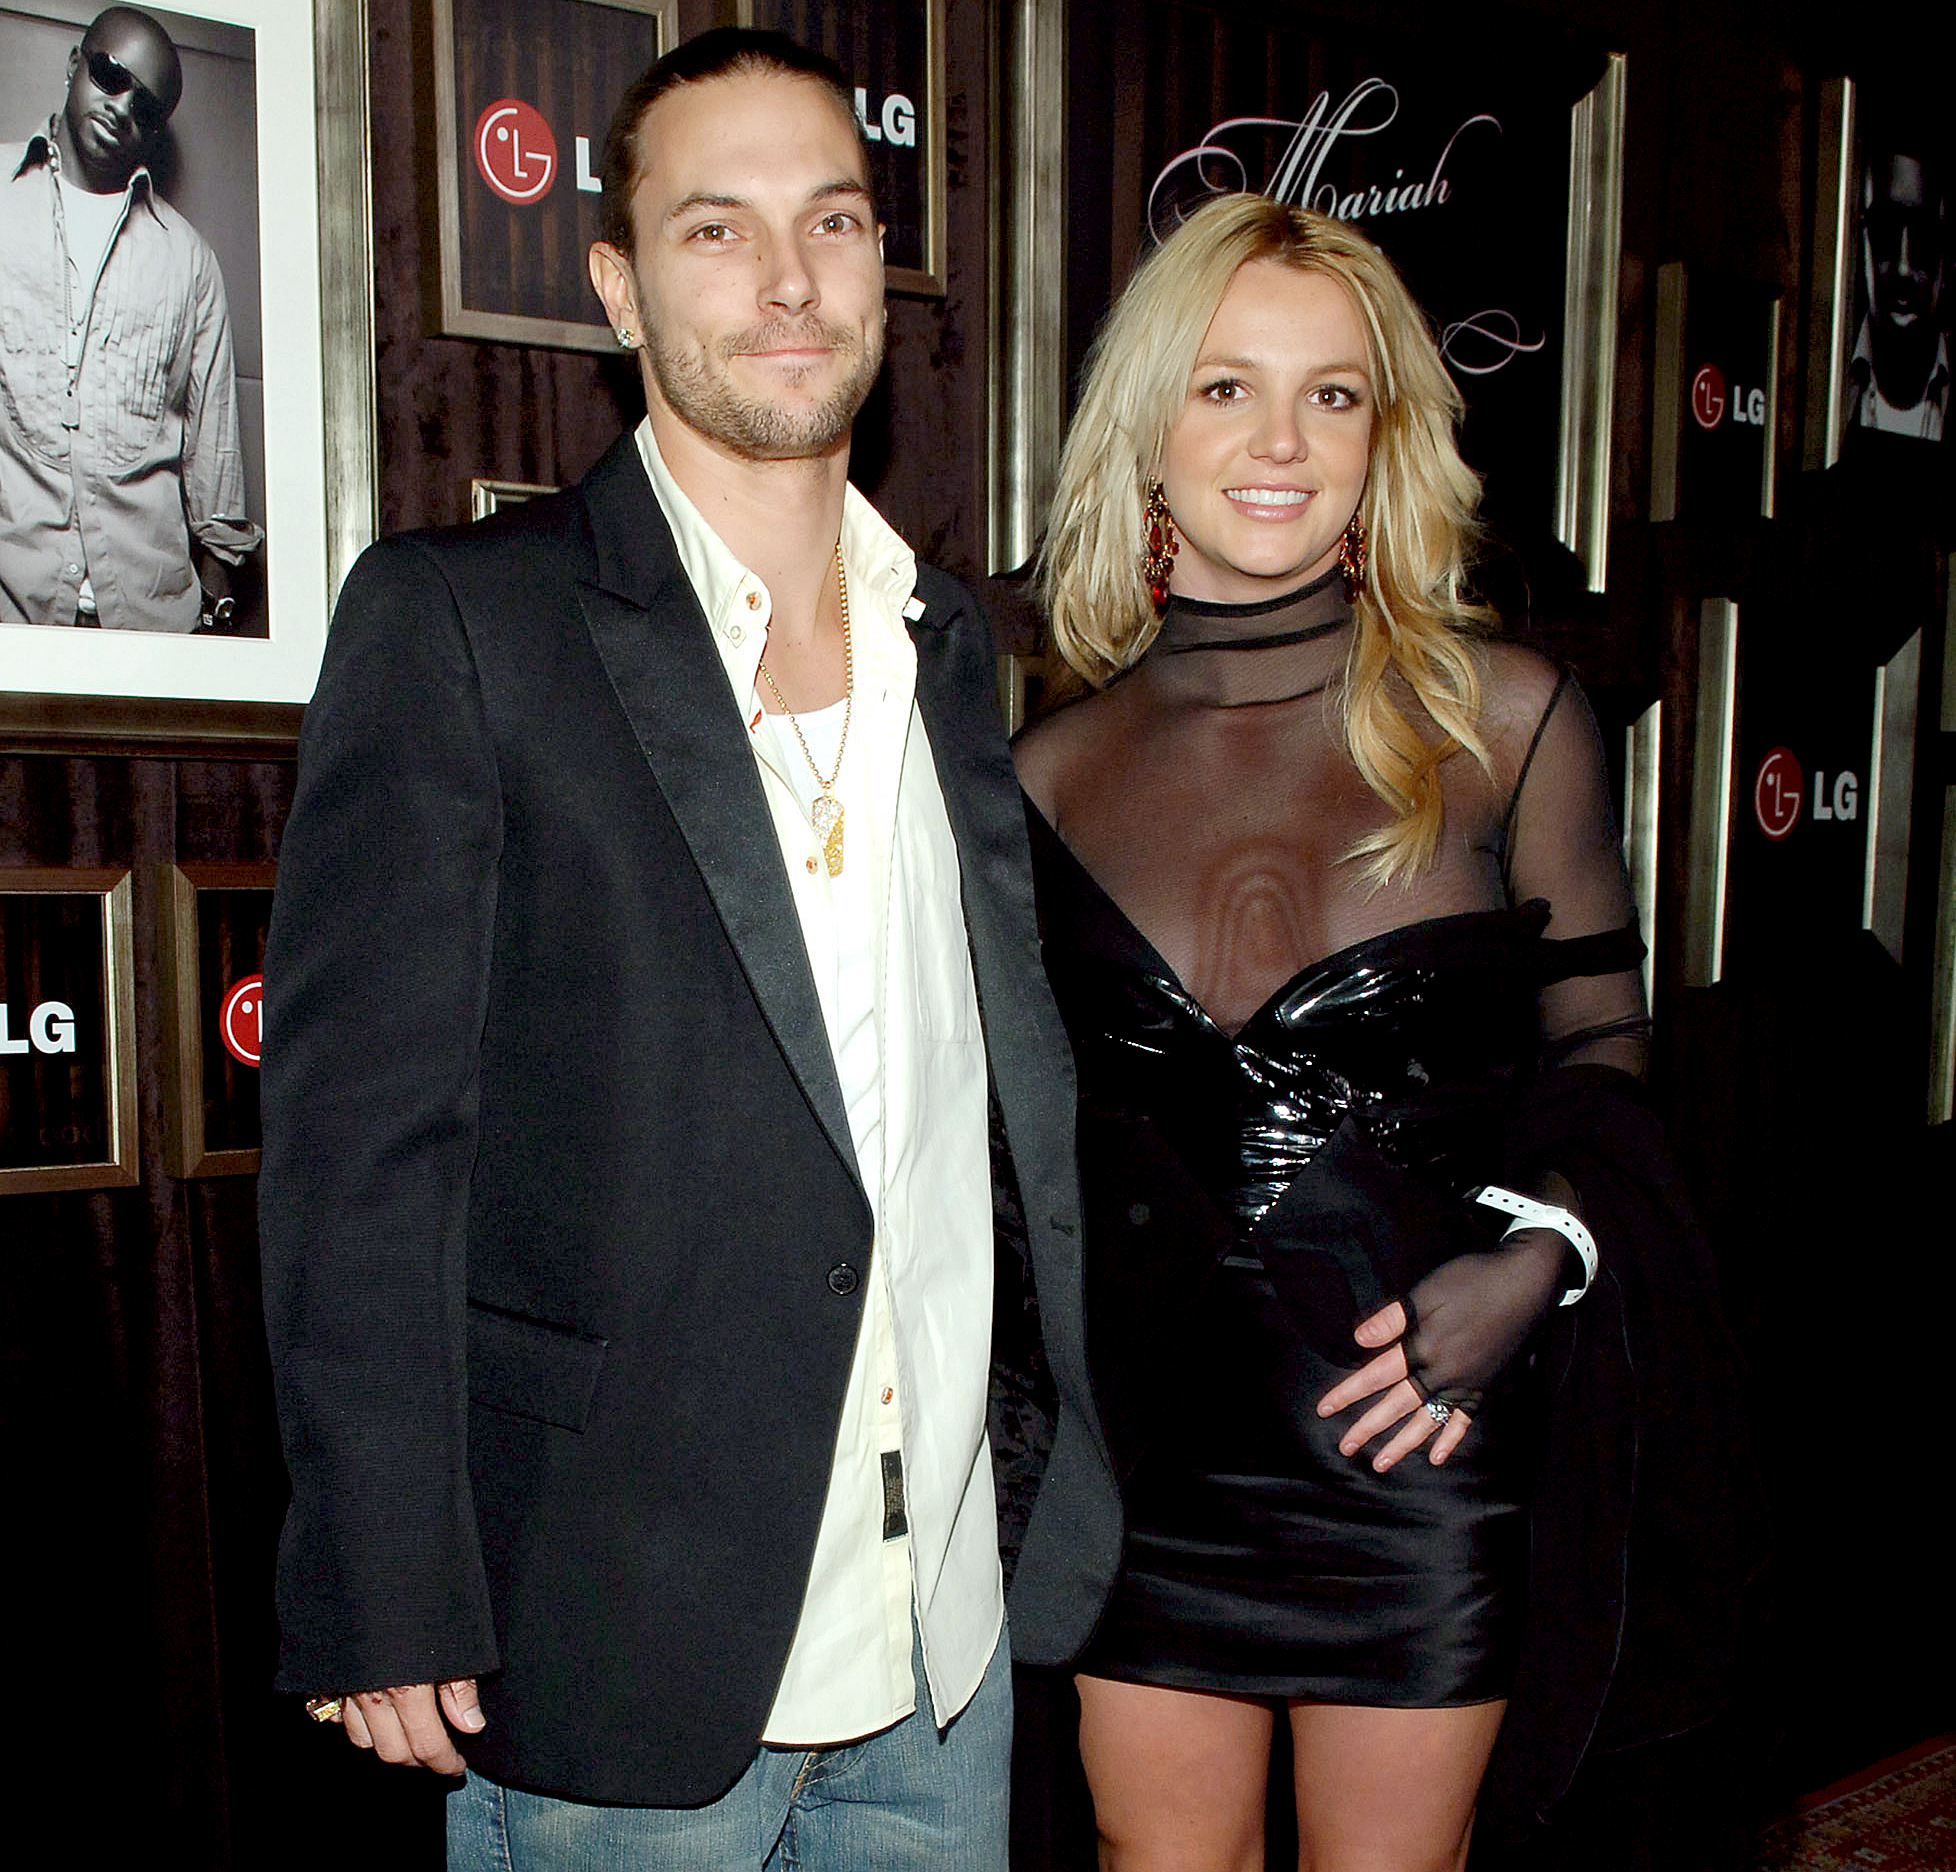 main-Kevin-Federline,-Britney-Spears - Kevin Federline and Britney Spears during Mariah Carey and Jermaine Dupri Host GRAMMY After Party Sponsored by LG at Private Home in Hollywood, Califormia, United States. (Photo by J.Sciulli/WireImage for Ogilvy Public Relations)